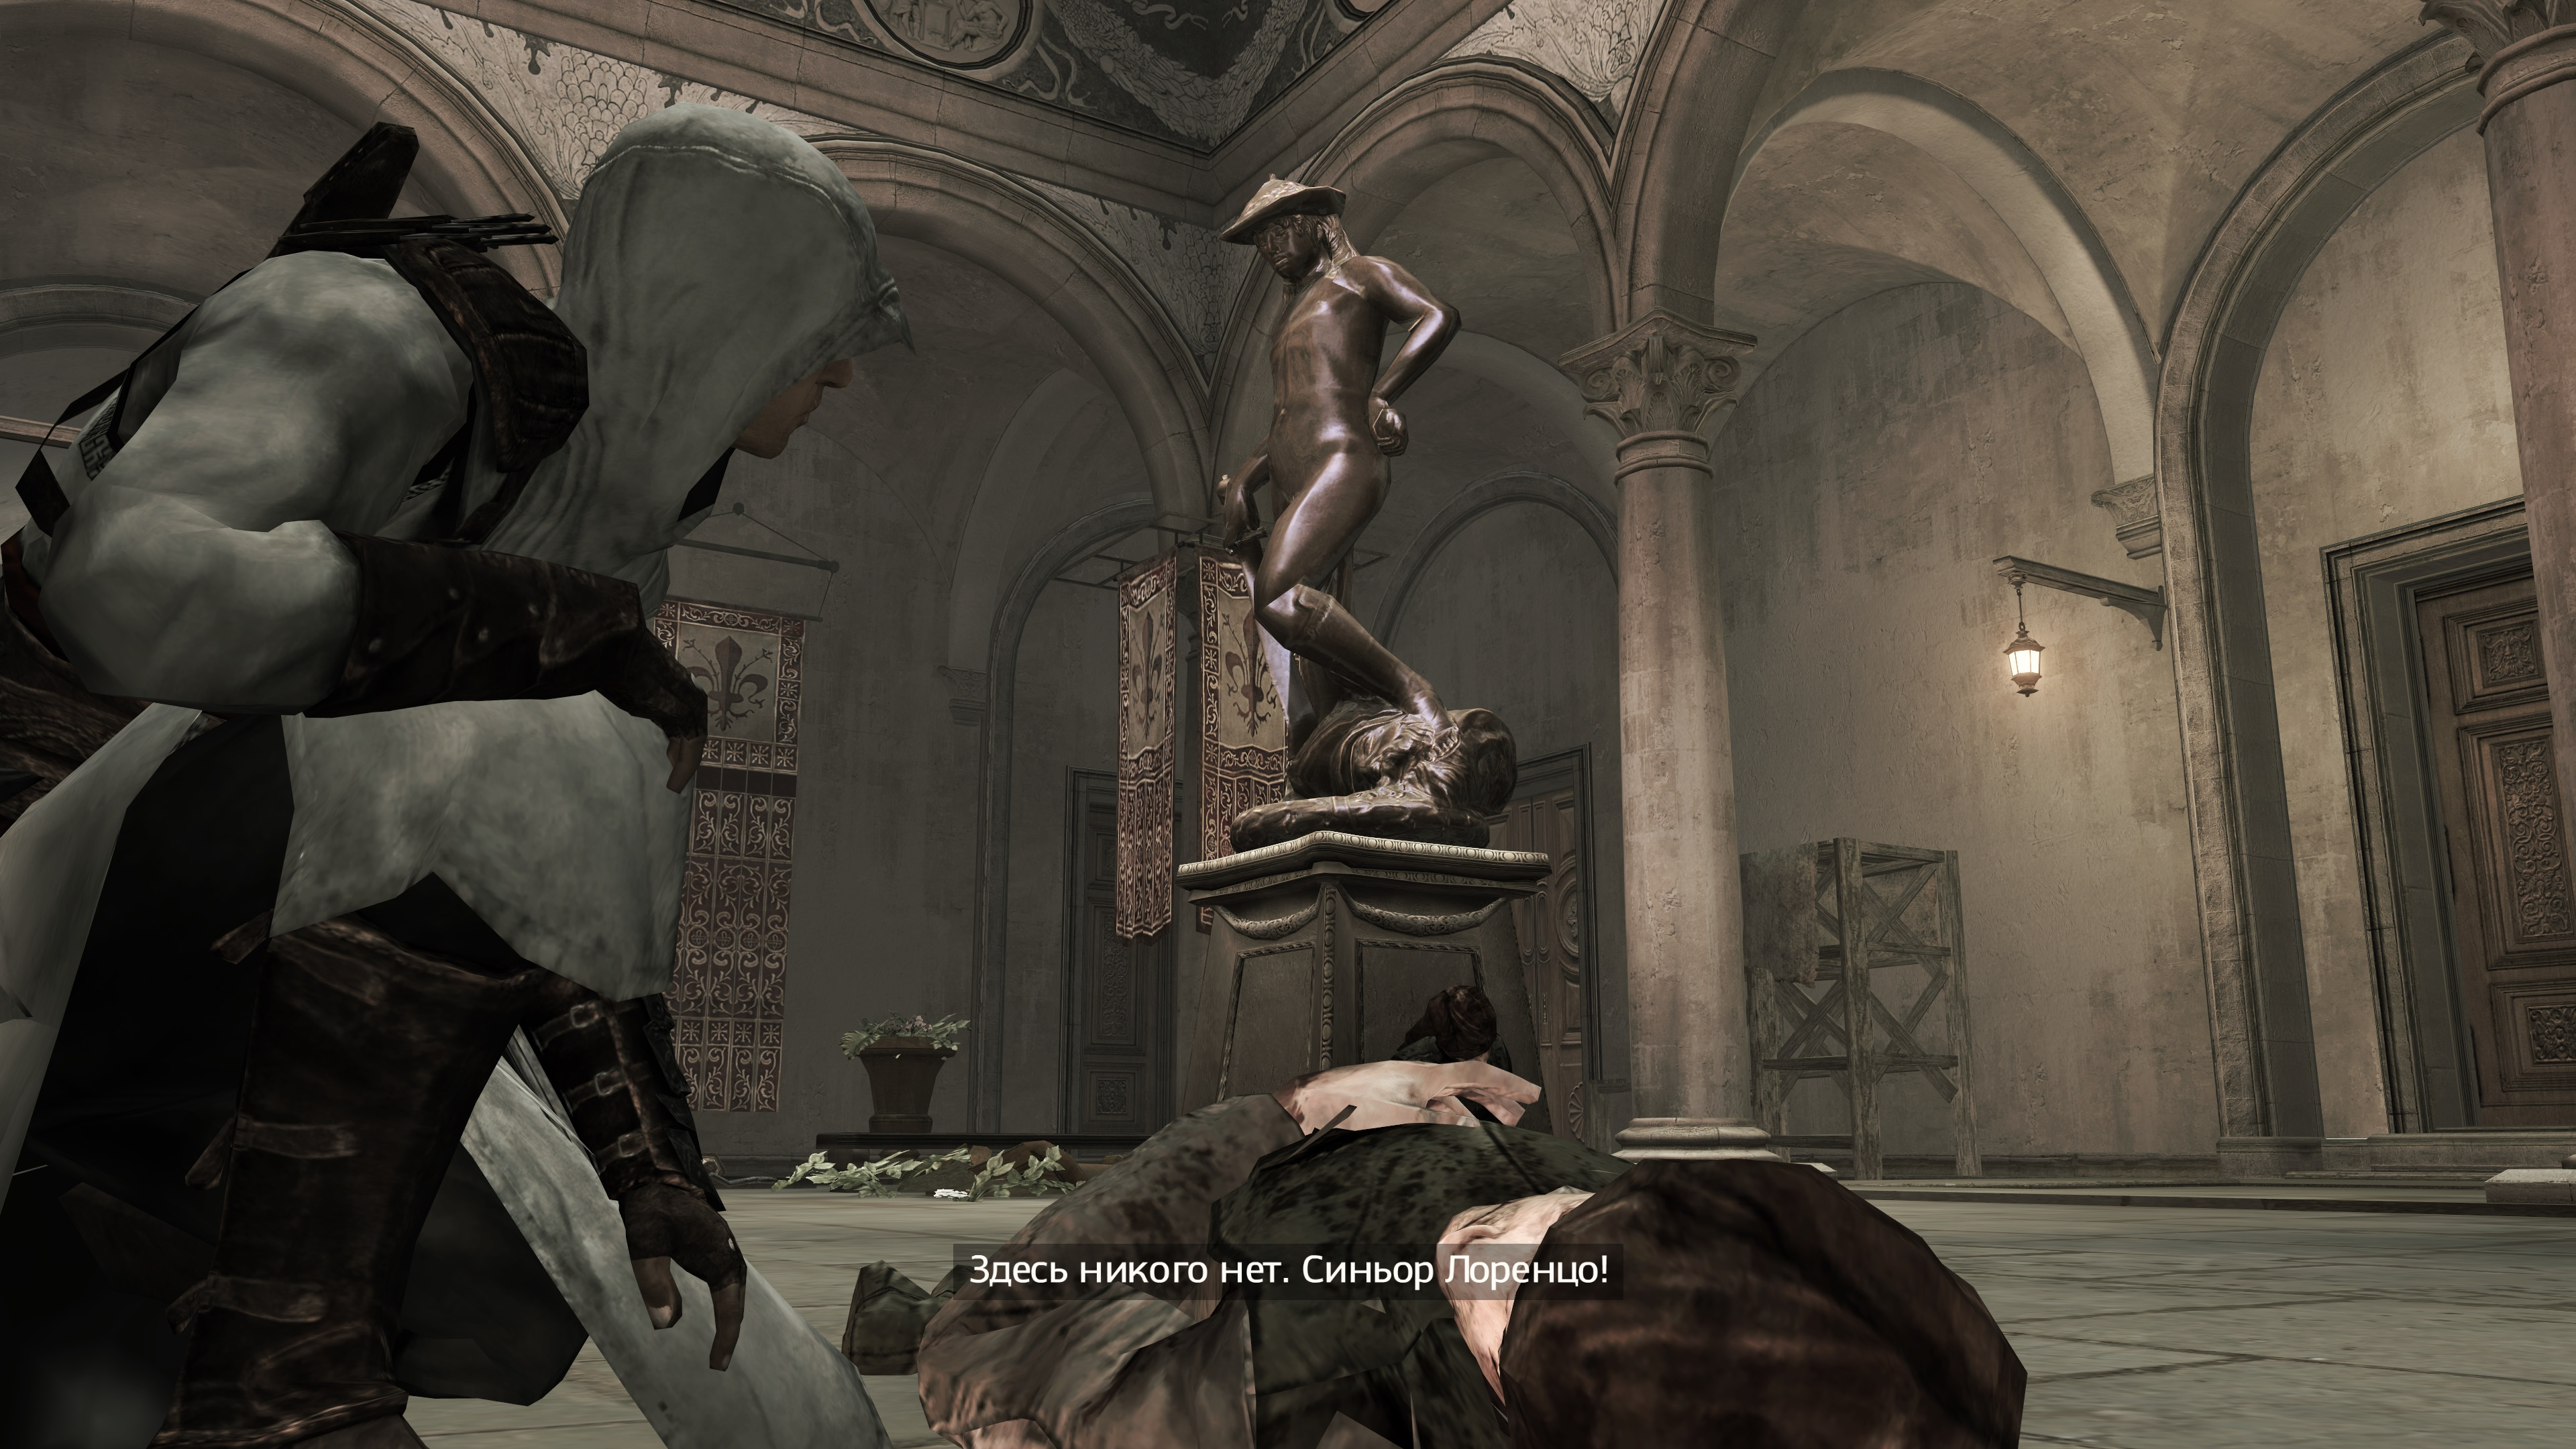 AssassinsCreedIIGame 2020-02-21 17-41-59-305.jpg - Assassin's Creed 2